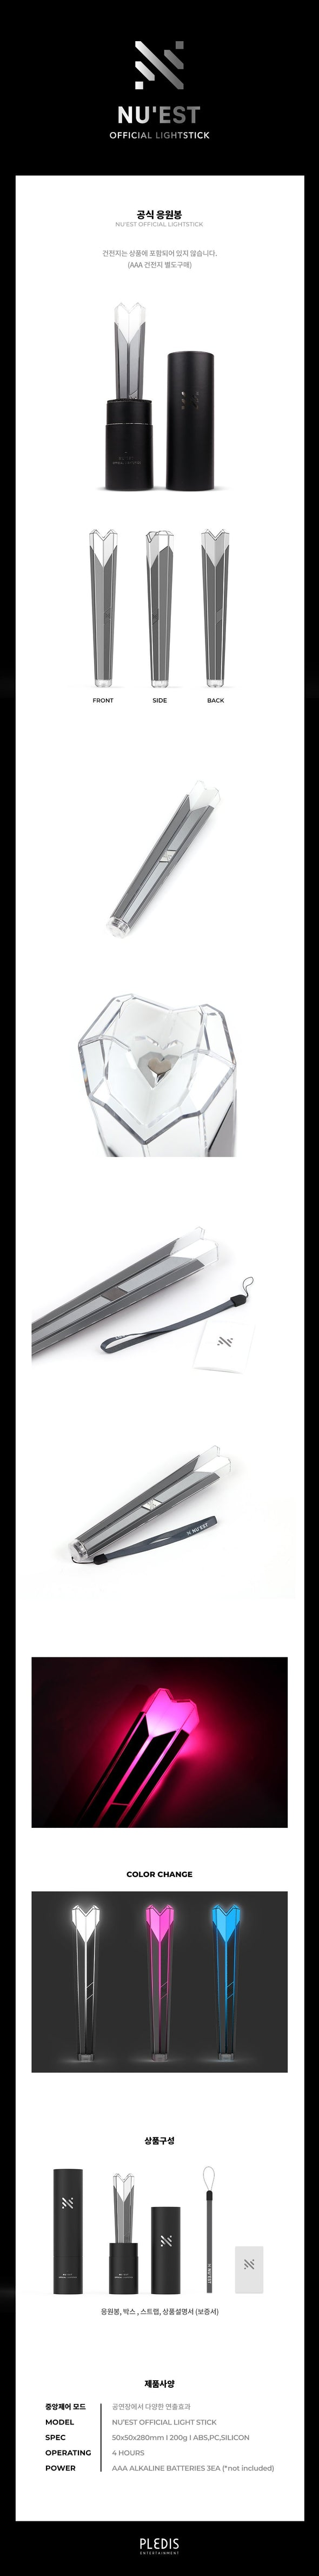 COKODIVE NU'EST - OFFICIAL LIGHT STICK